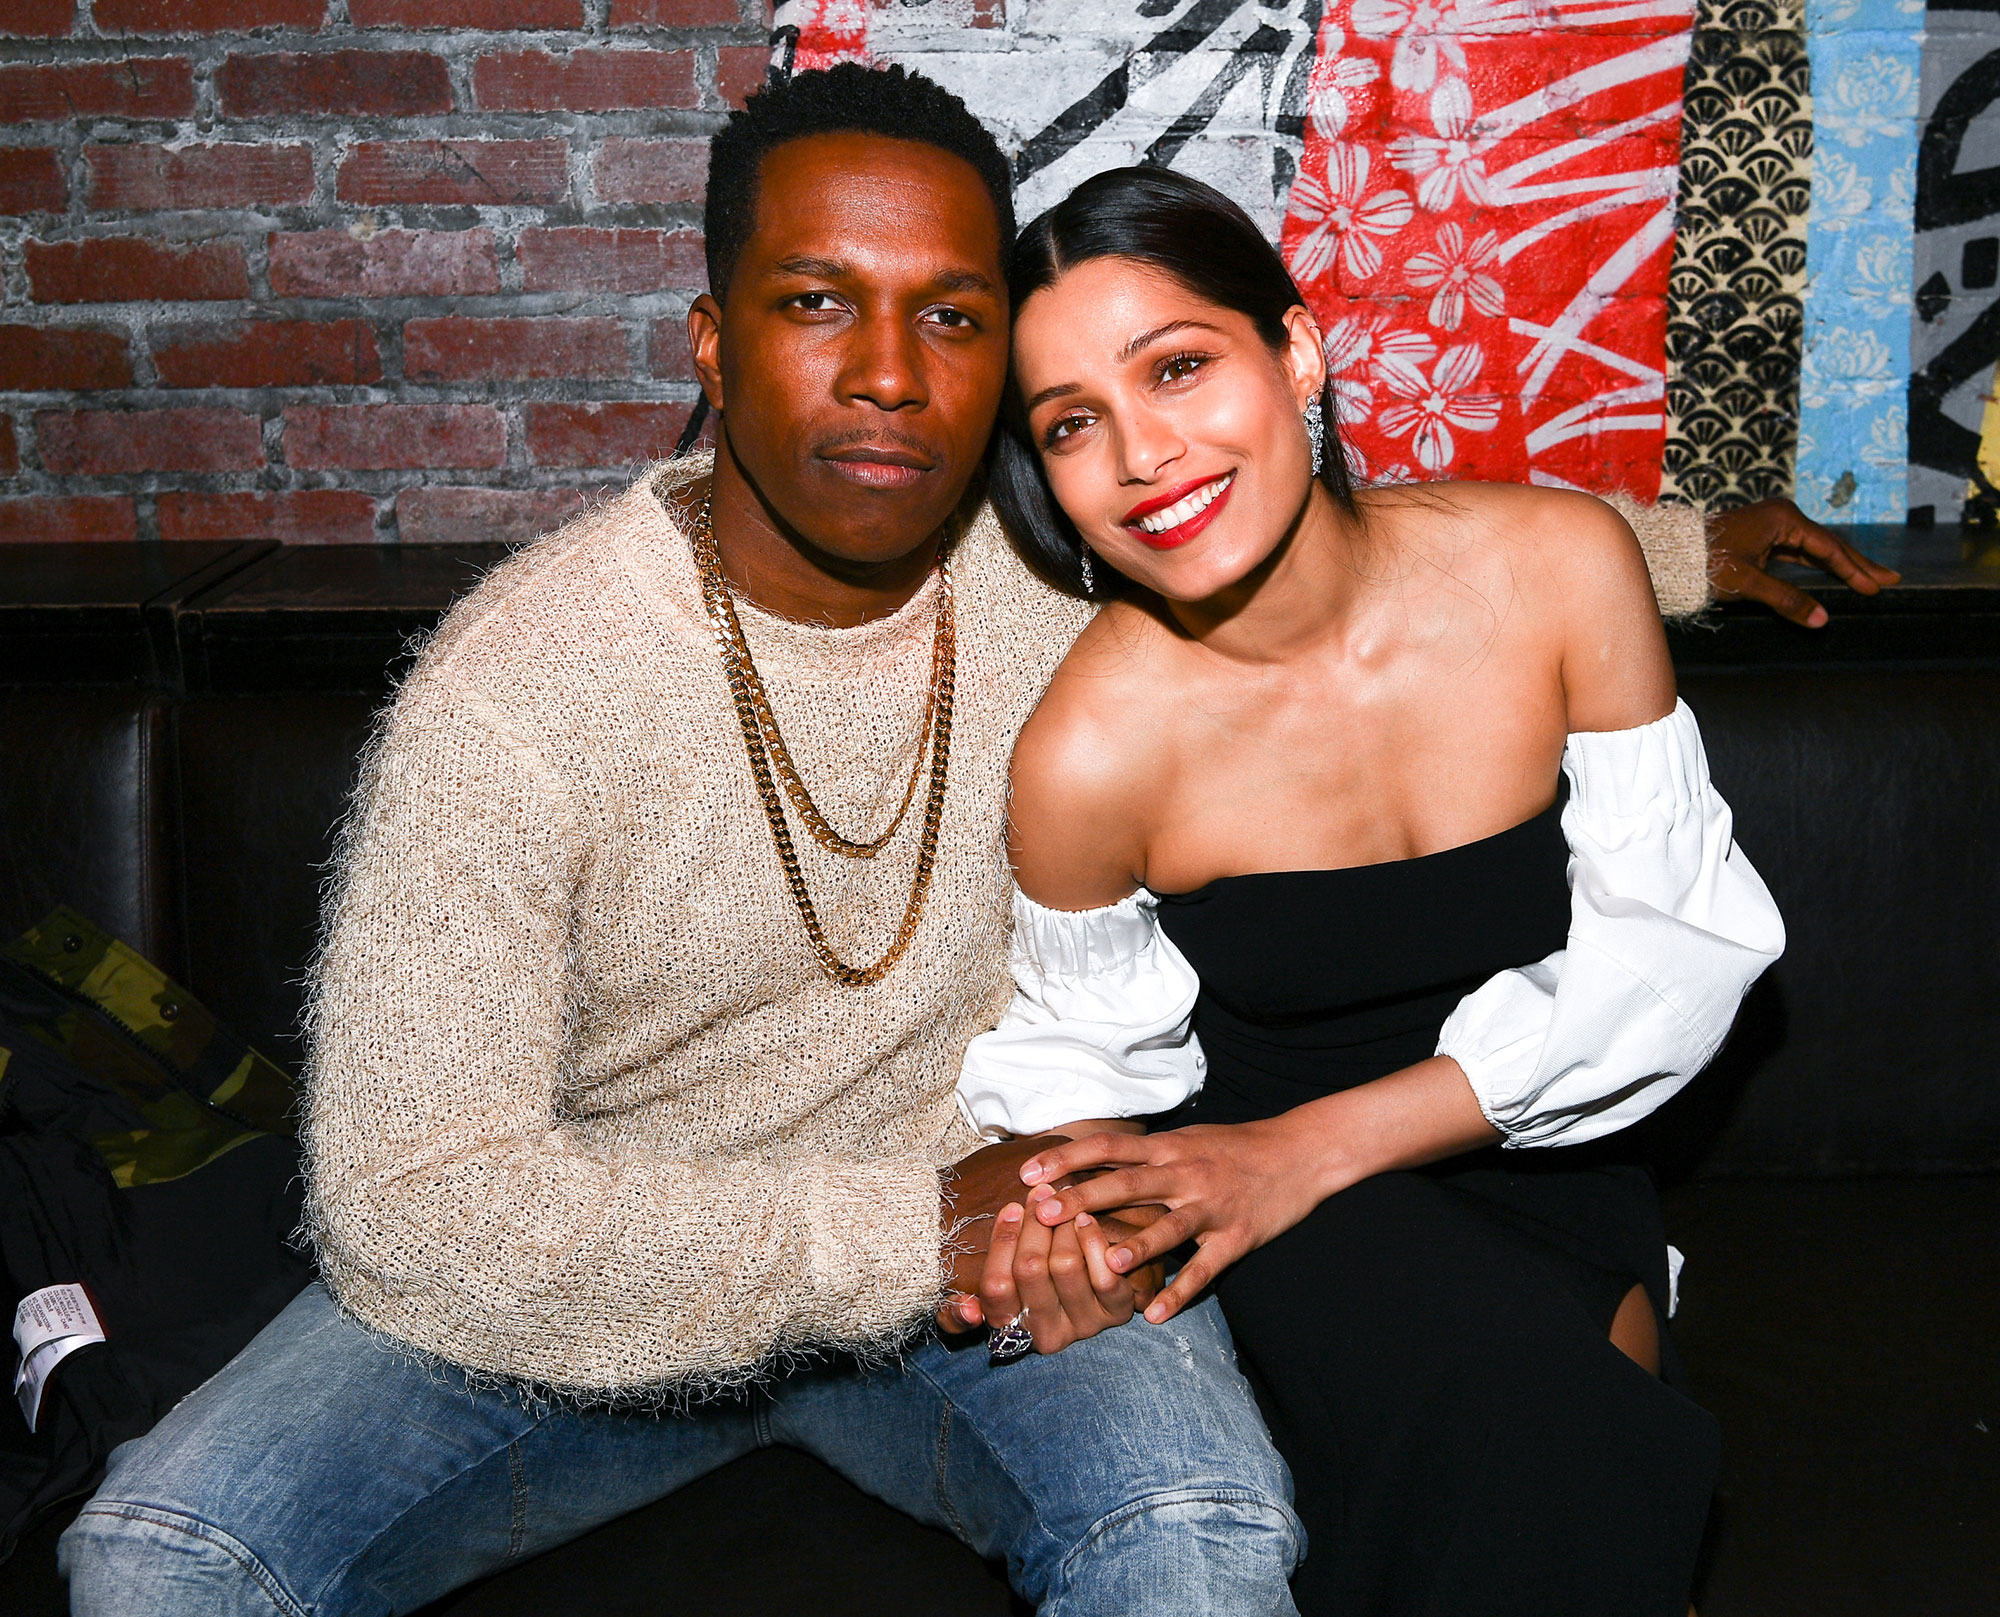 Leslie Odom Jr. and Freida Pinto